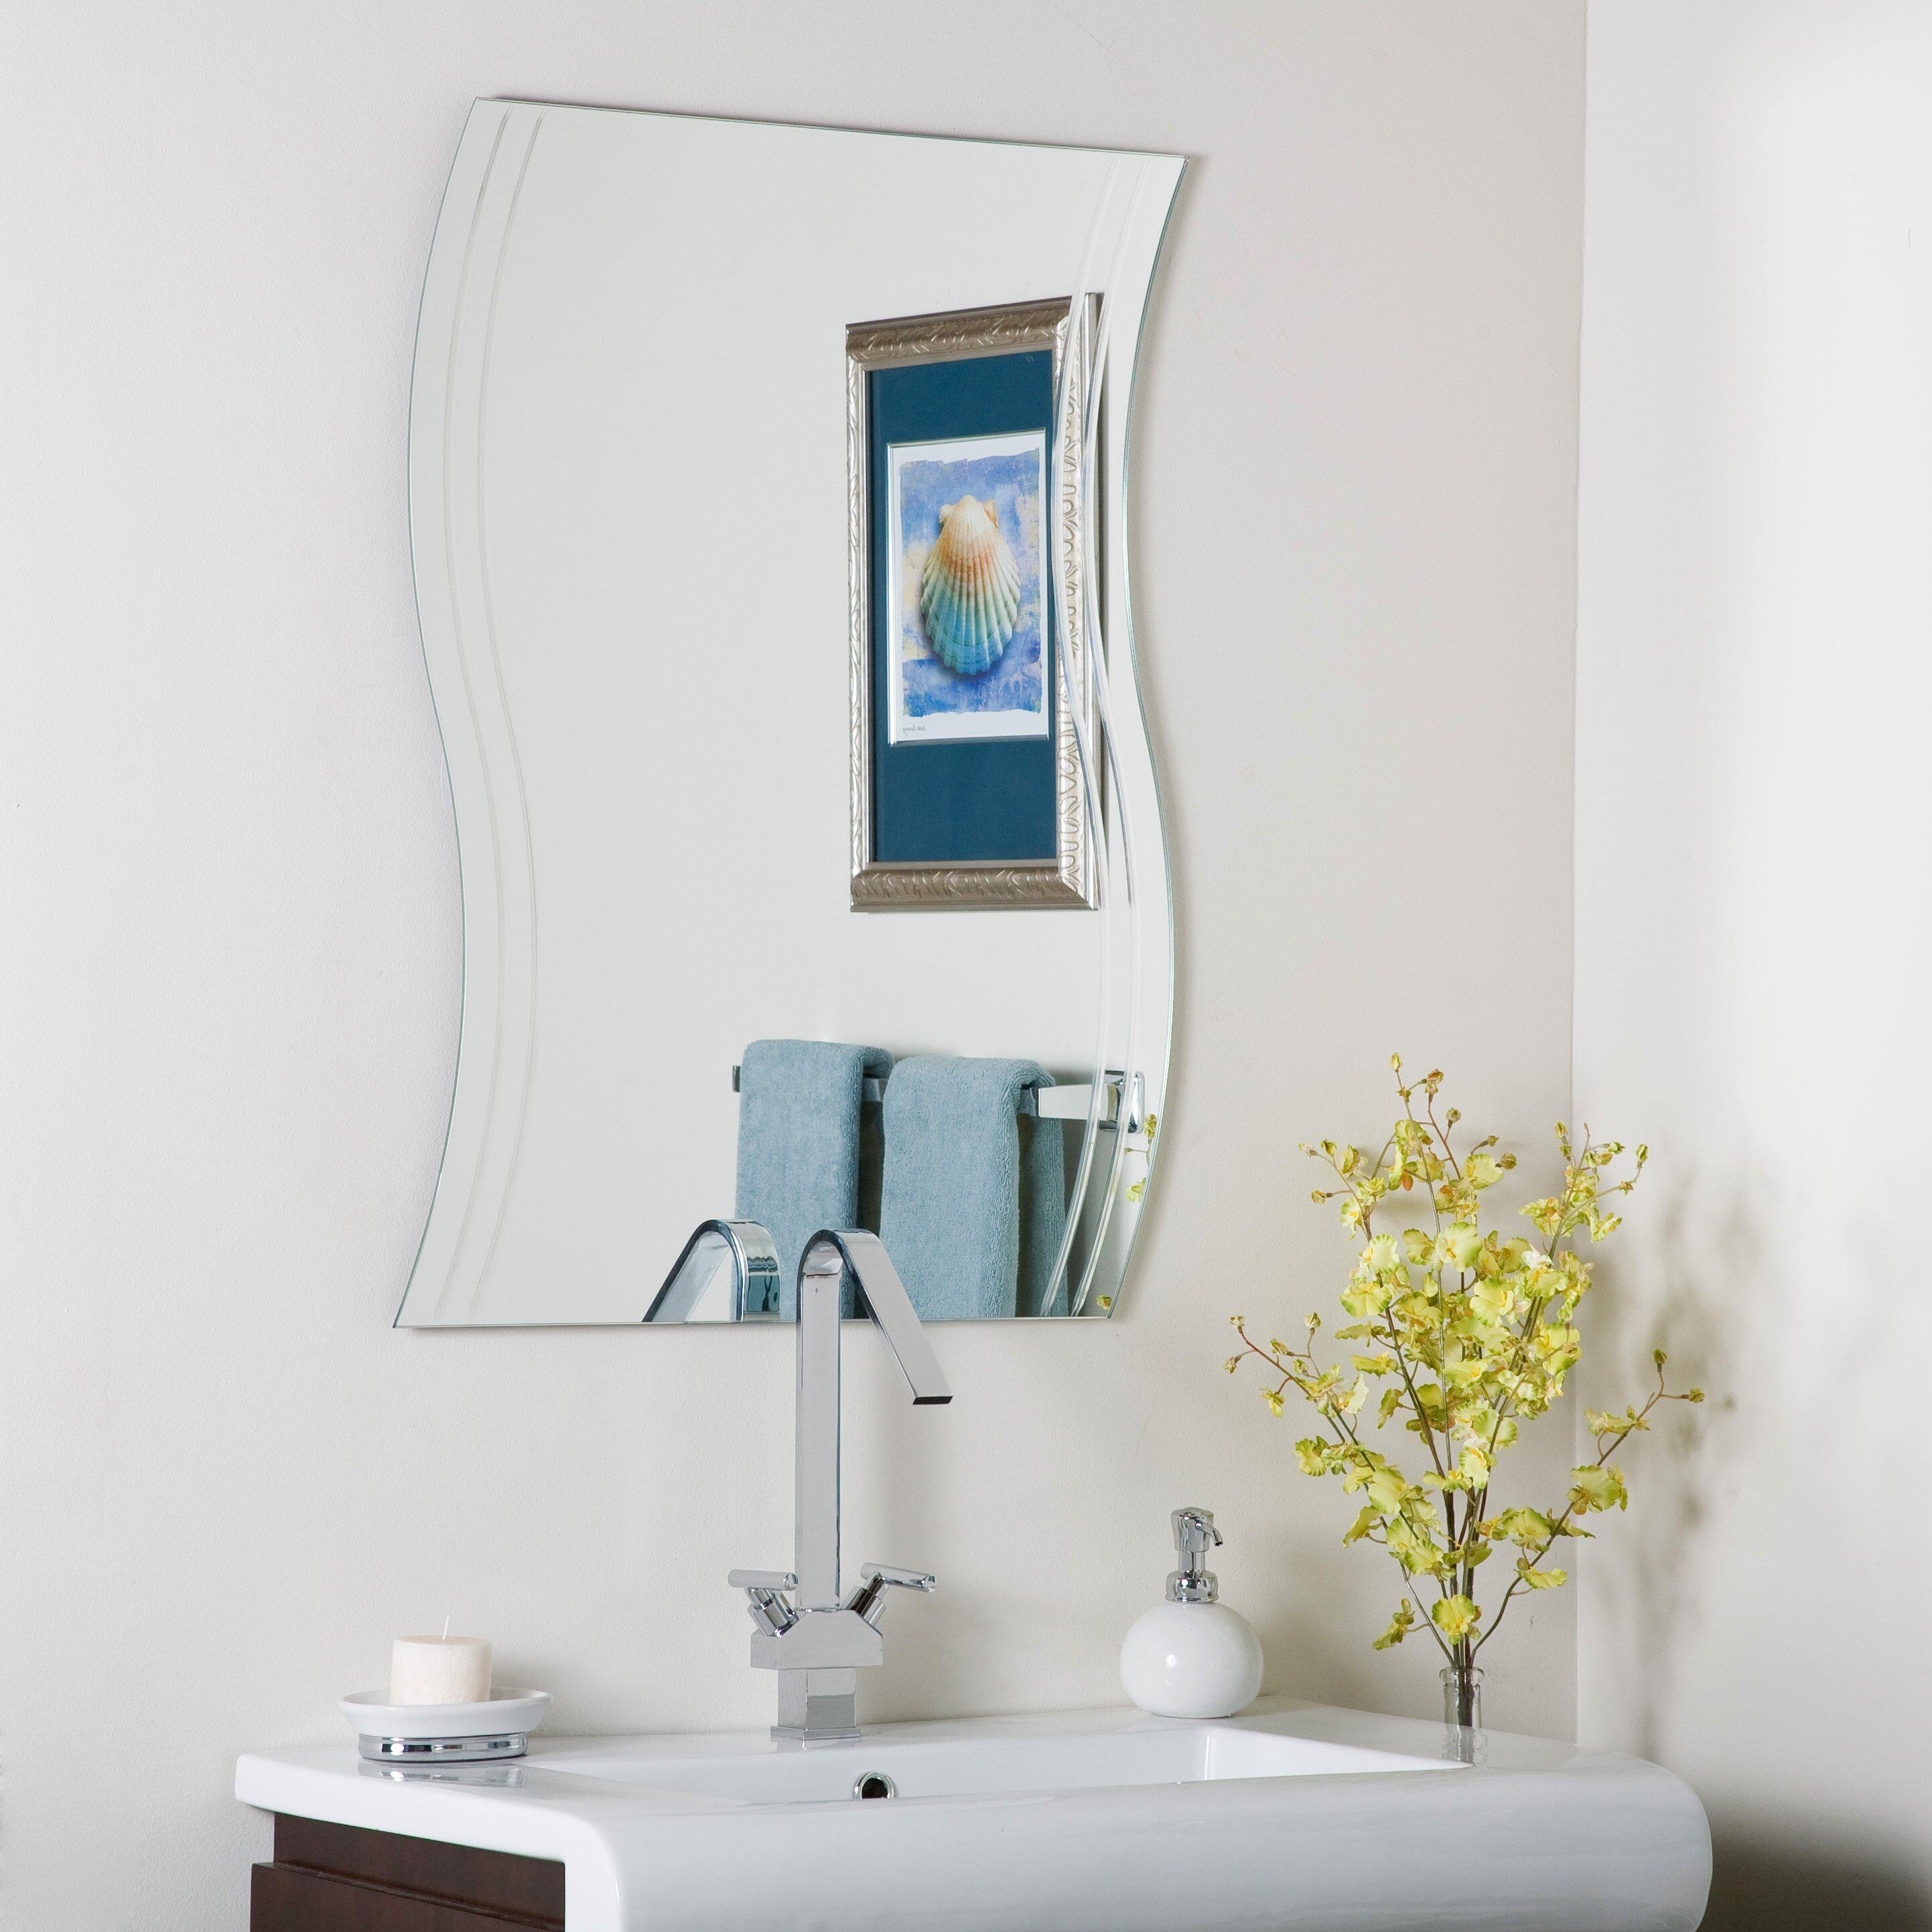 Decor wonderland frameless surf wall mirror reviews for Frameless wall mirror